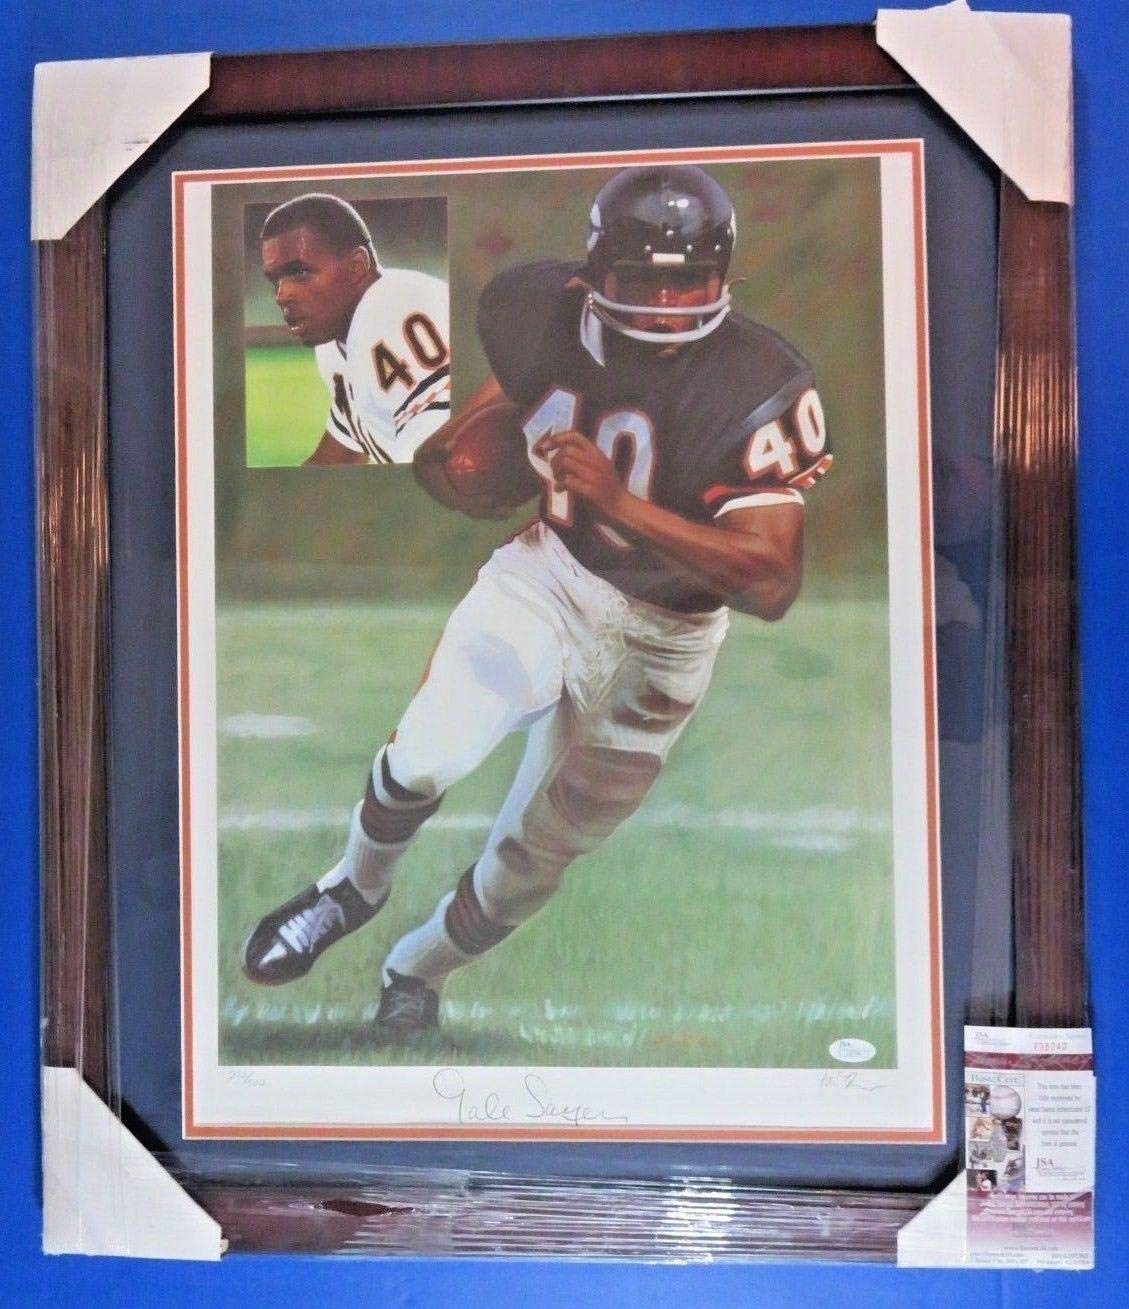 GALE SAYERS SIGNED 18x22 MATTED & FRAMED LITHOGRAPH ~ LTD ED. 292/500 ~ COA JSA Certified Autographed NFL Art